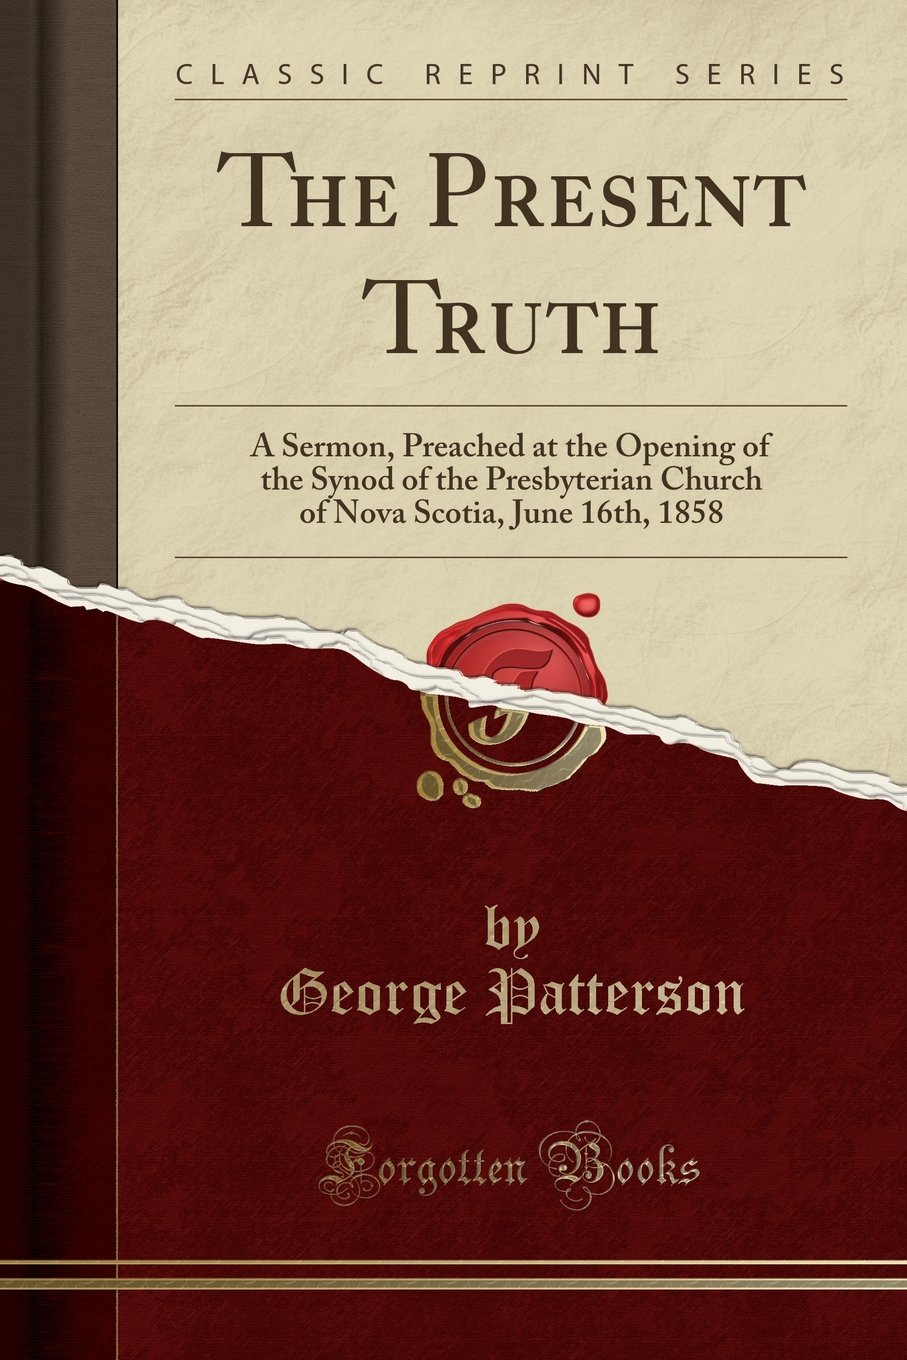 The Present Truth: A Sermon, Preached at the Opening of the Synod of the Presbyterian Church of Nova Scotia, June 16th, 1858 (Classic Reprint) pdf